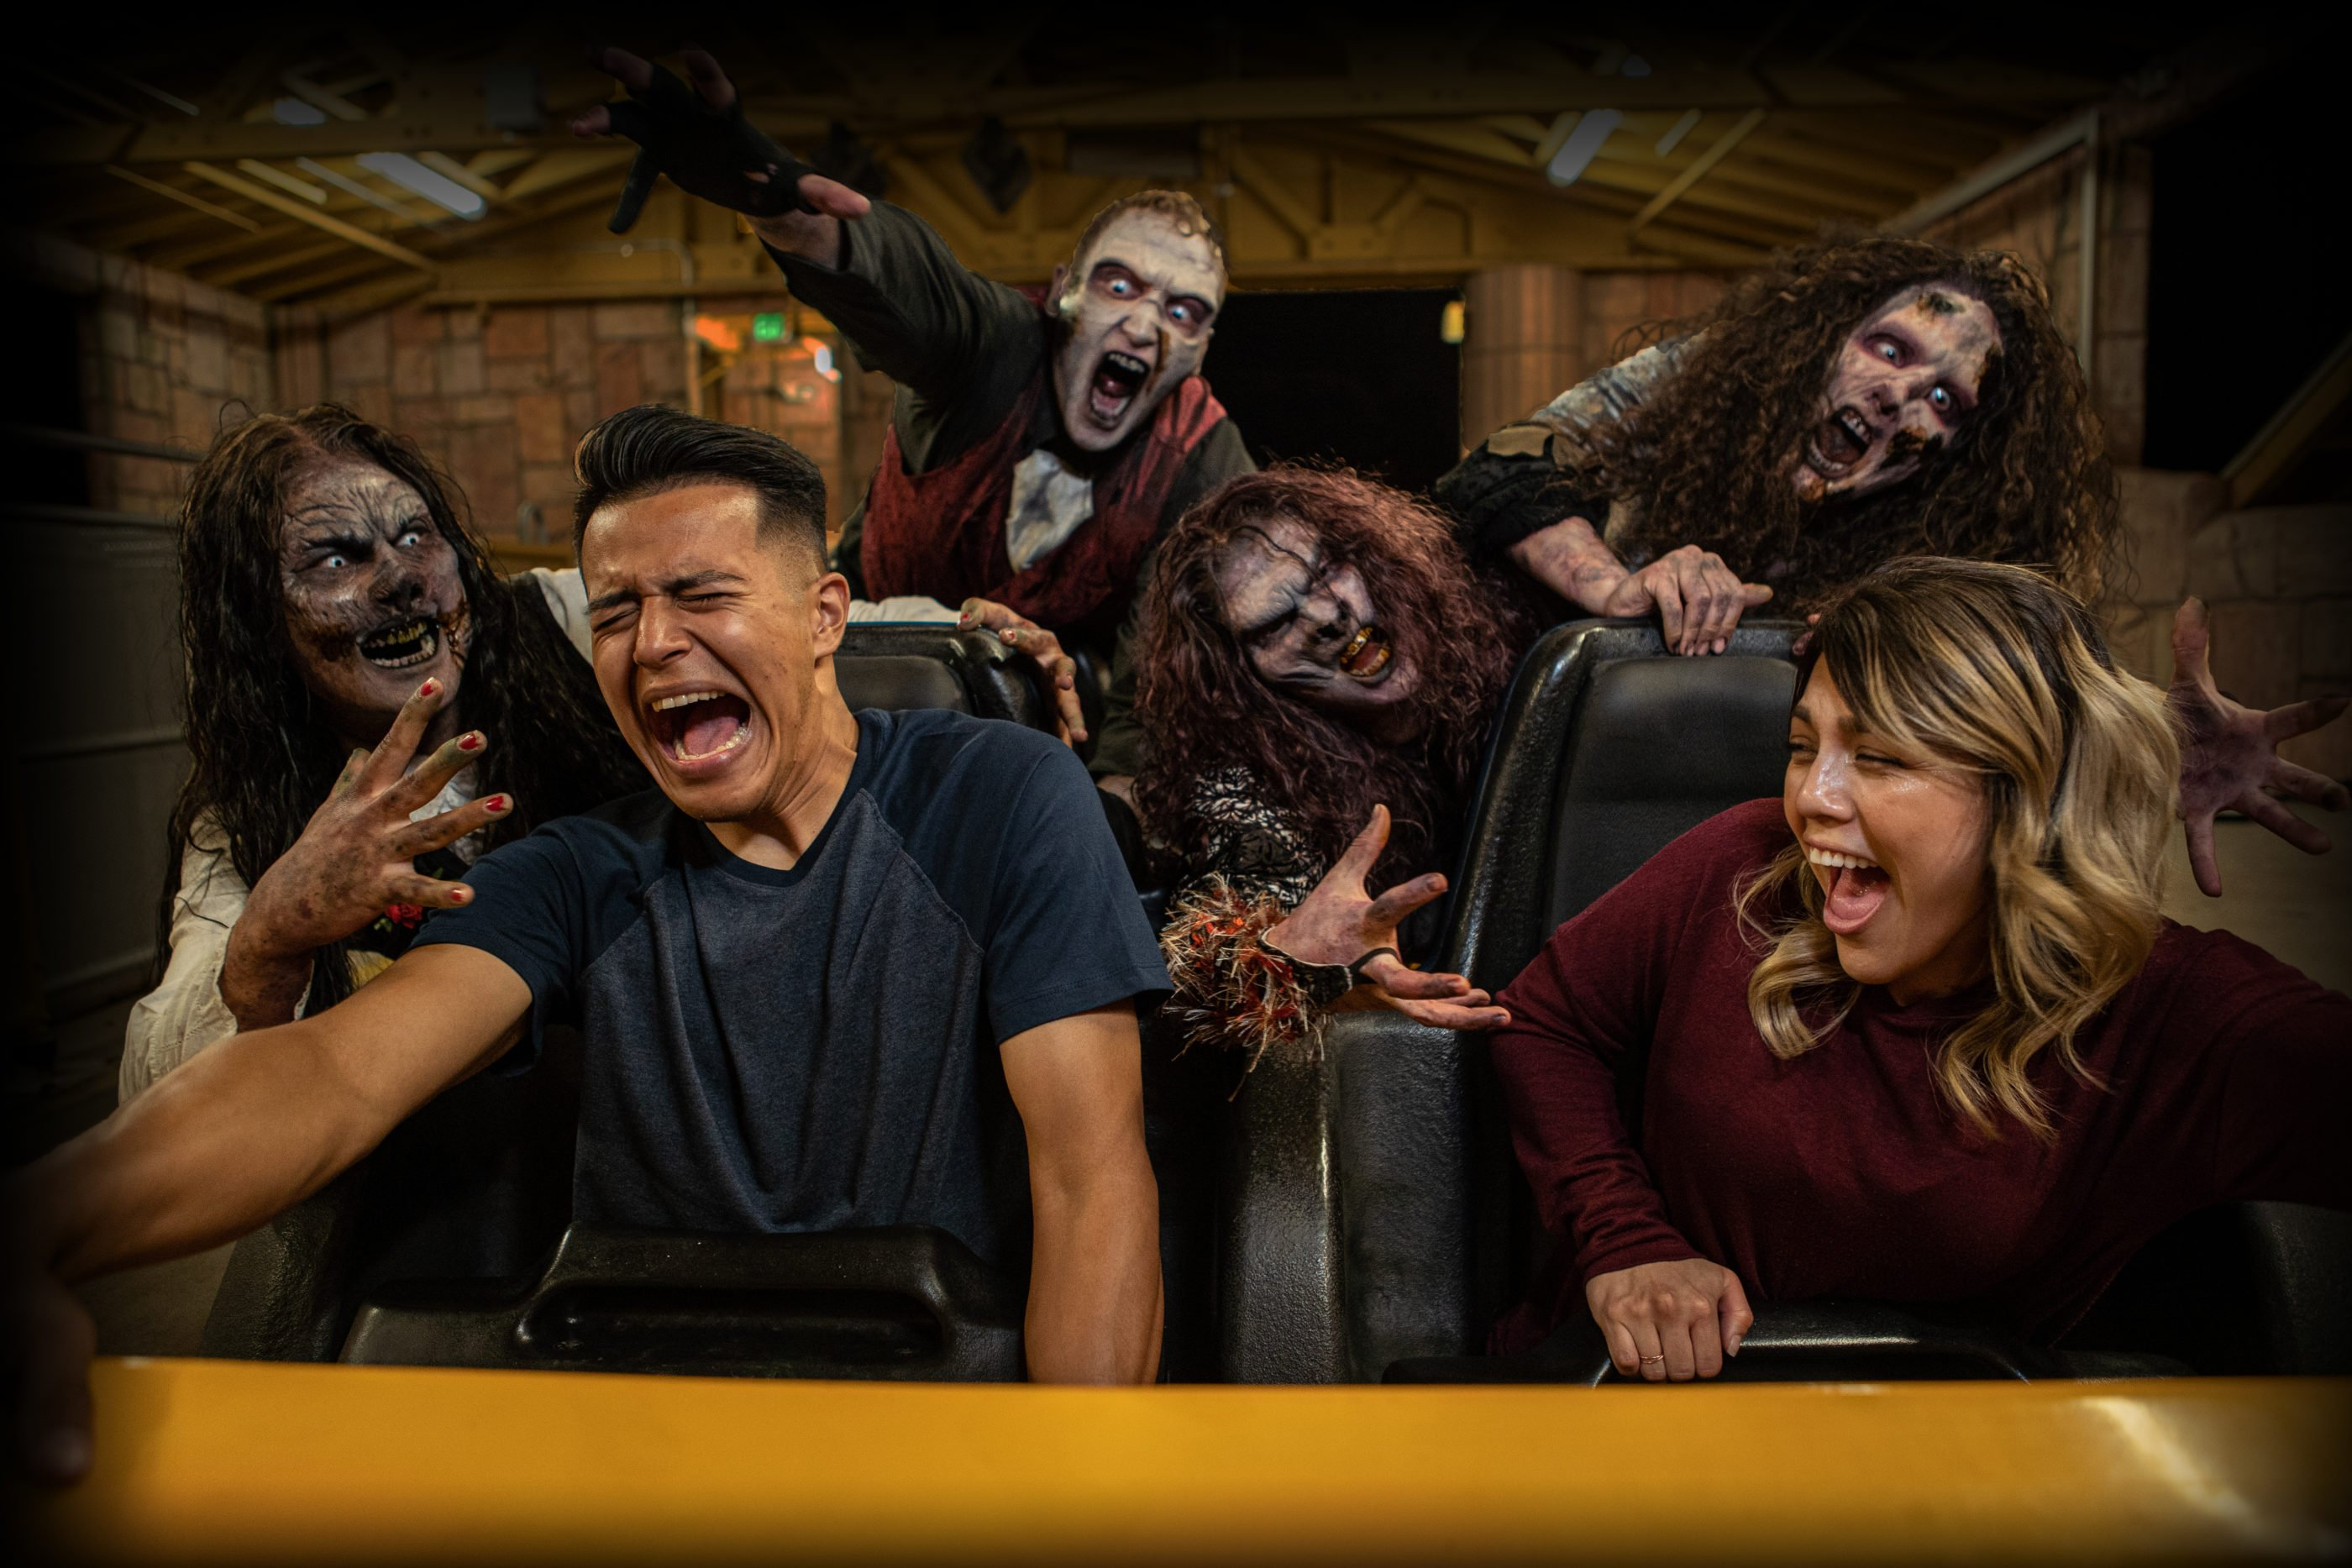 Ghouls scare riders as they board the Goliath roller coaster at Six Flags Magic Mountain.